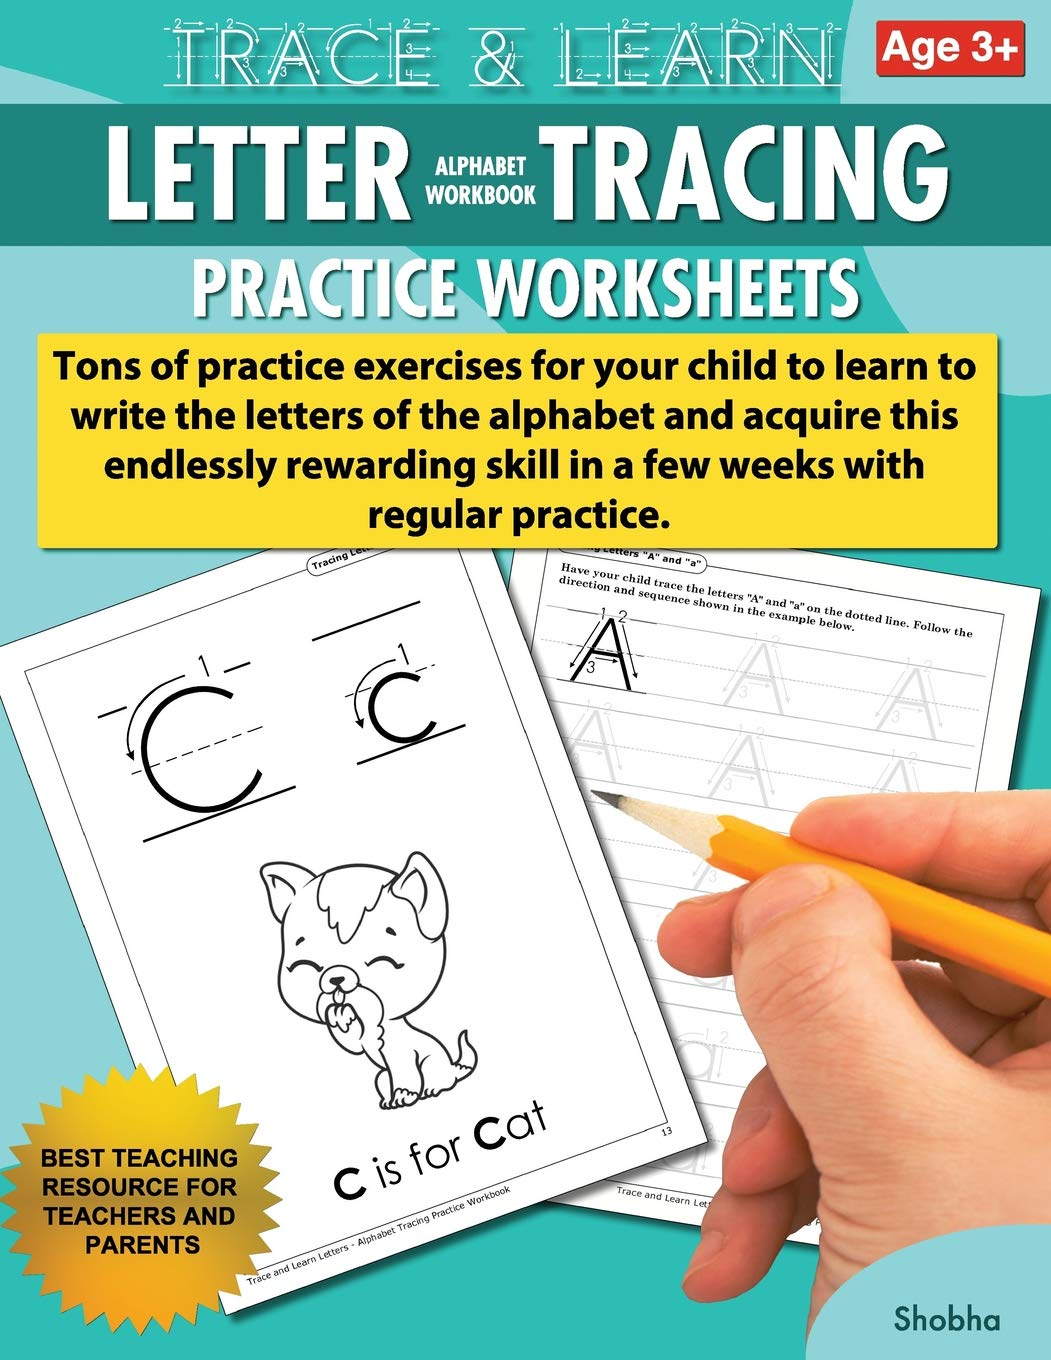 Download Trace & Learn Letters Alphabet Tracing Workbook Practice Worksheets: Daily Practice Guide for Pre-K Children (Volume 1) pdf epub